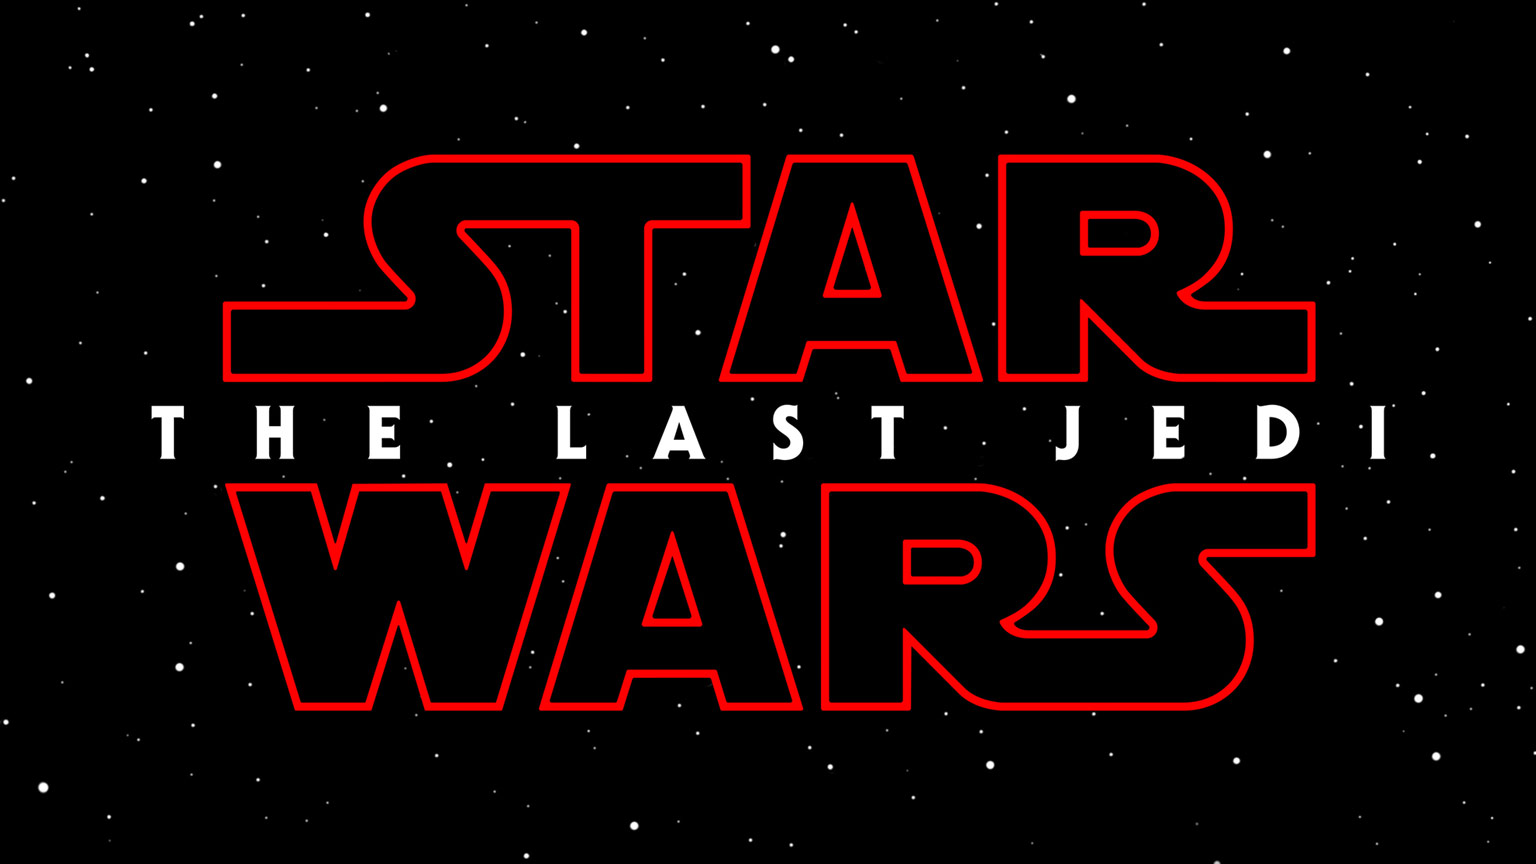 'Star Wars: The Last Jedi' Won't Be at Comic-Con 2017